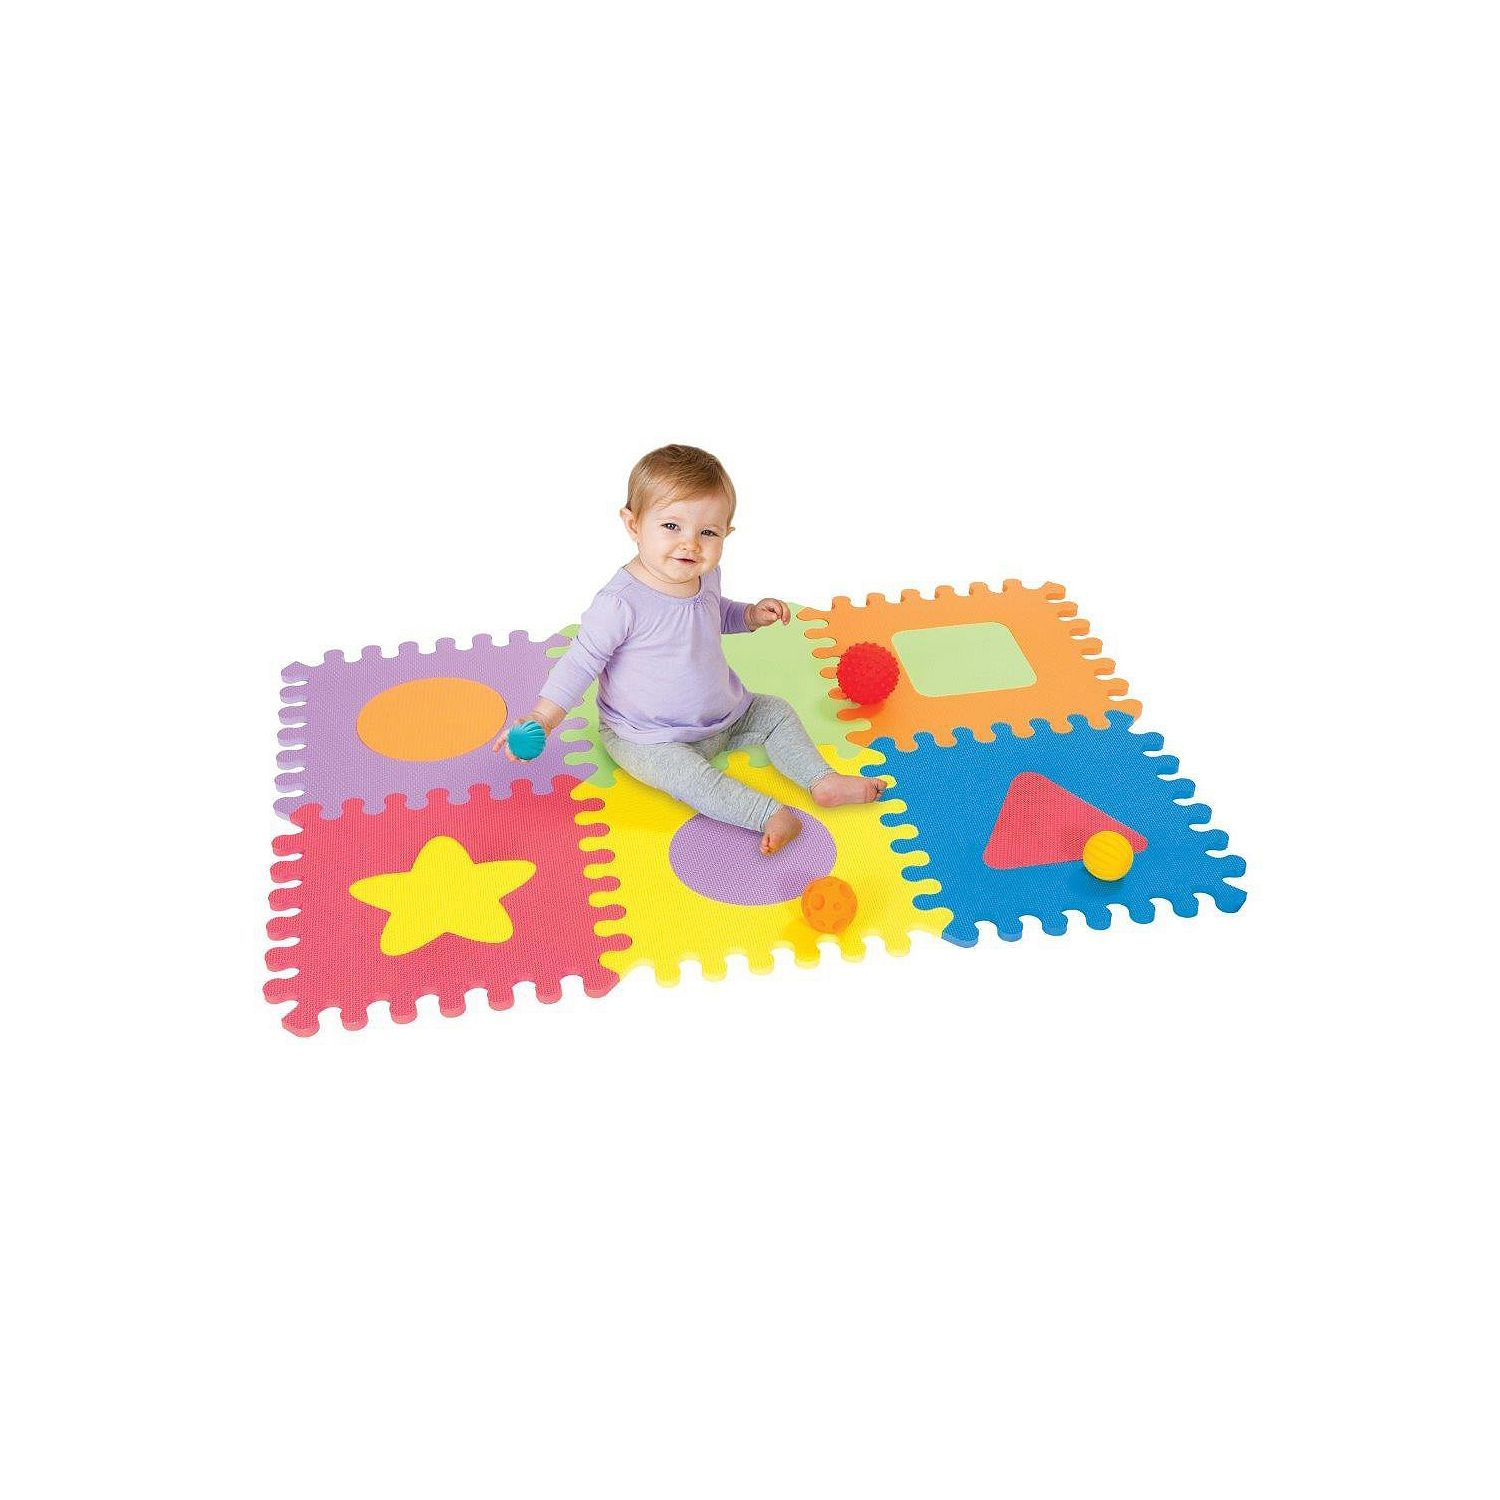 Product of Infantino Soft Foam Puzzle Mat- Pack of 5 Puzzles [Bulk Savings] by